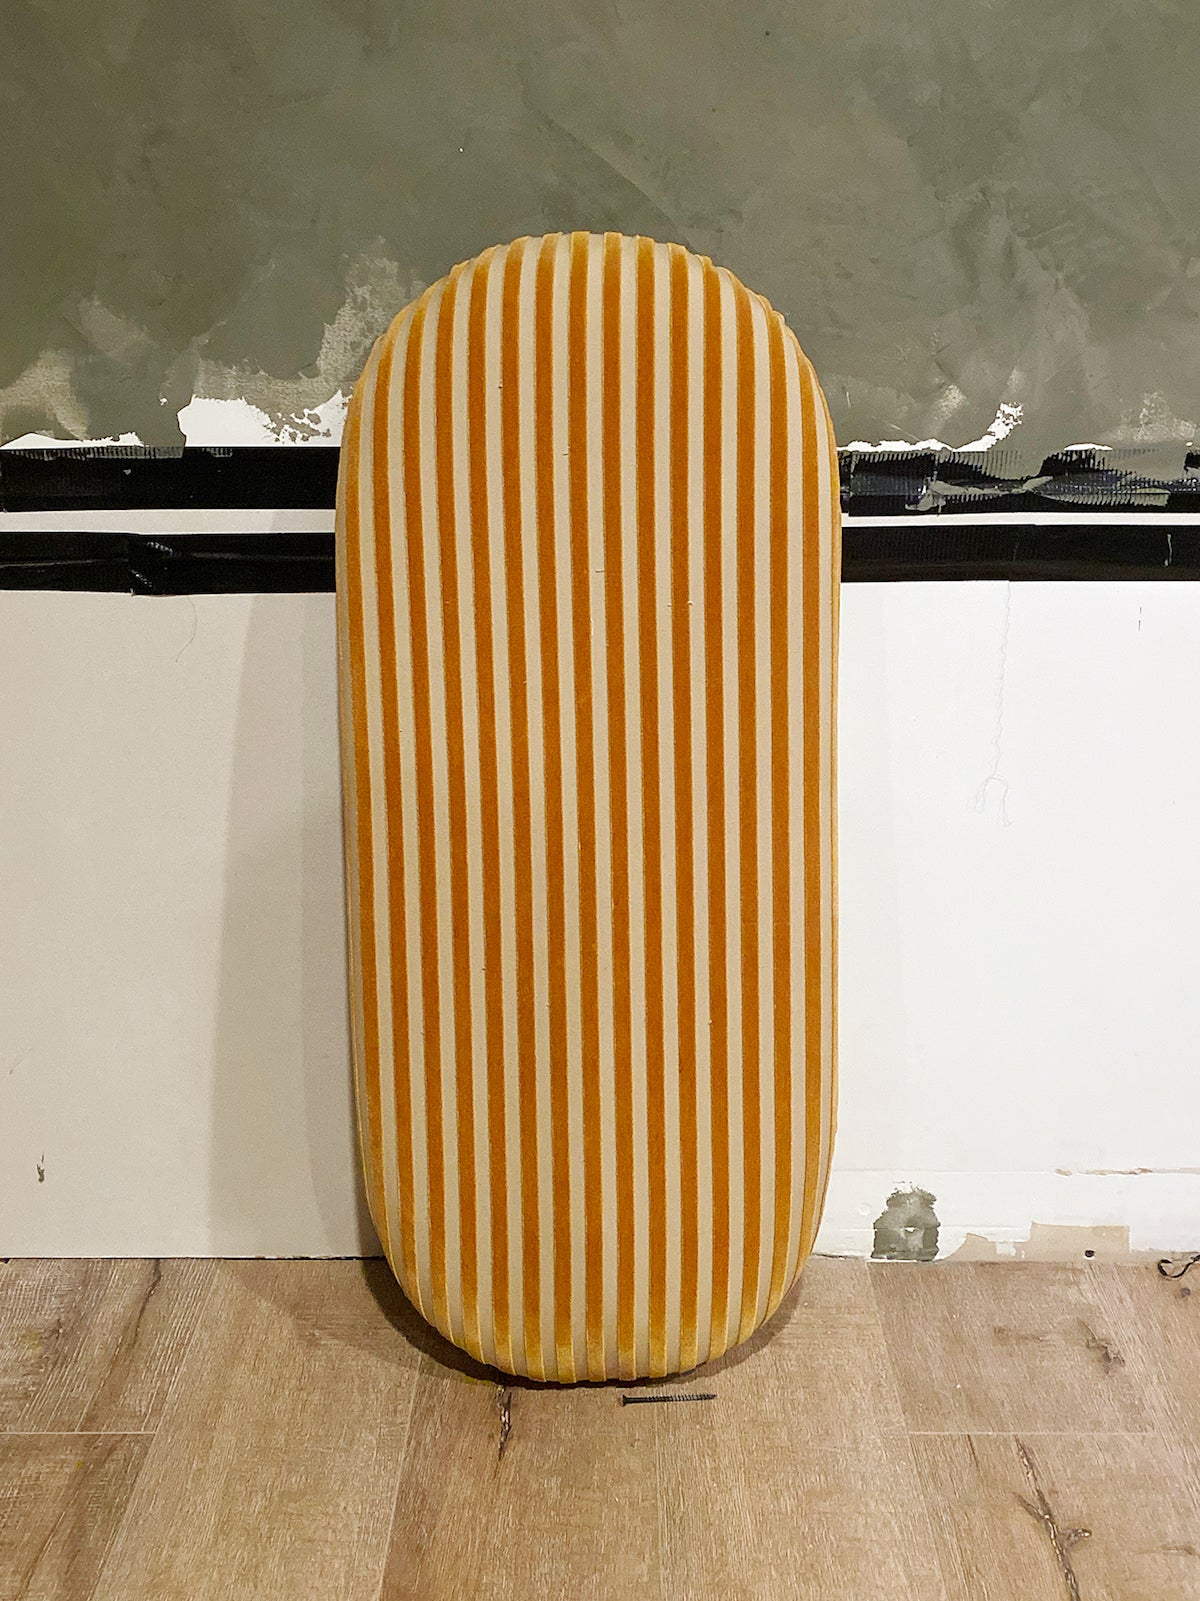 oval board covered in striped fabric